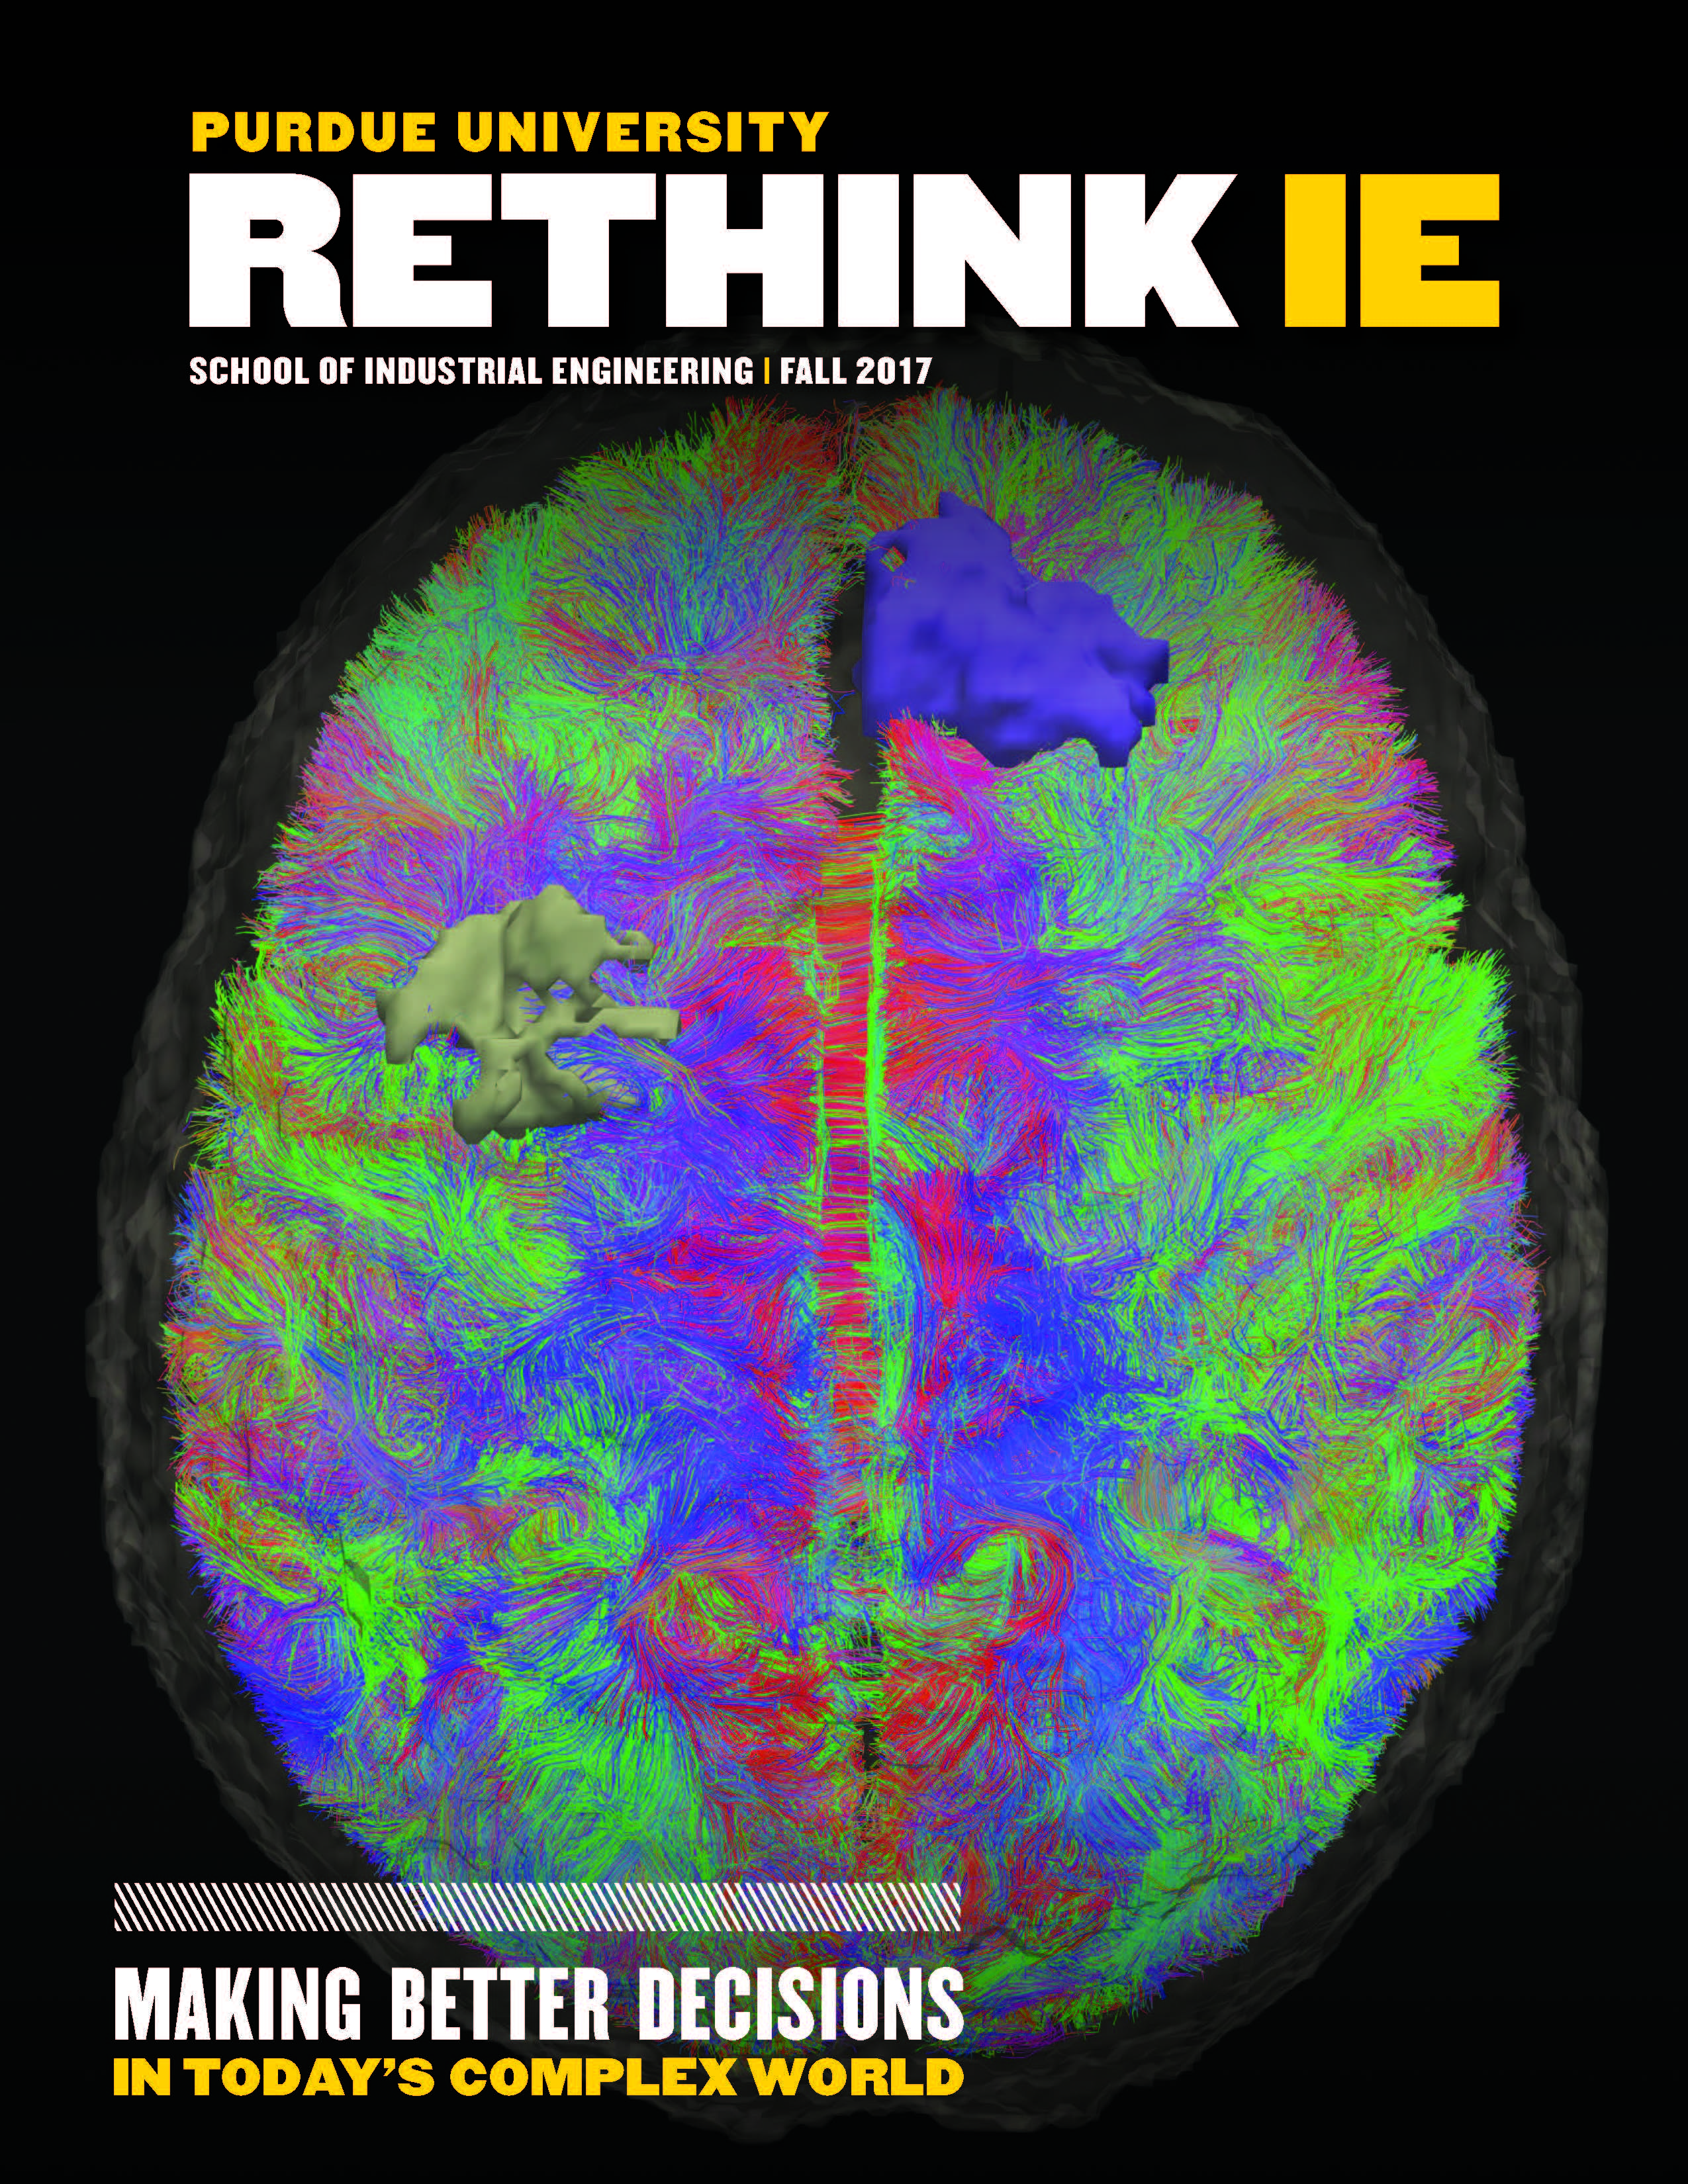 Photo of cover of 2017 Fall Rethink IE magazine